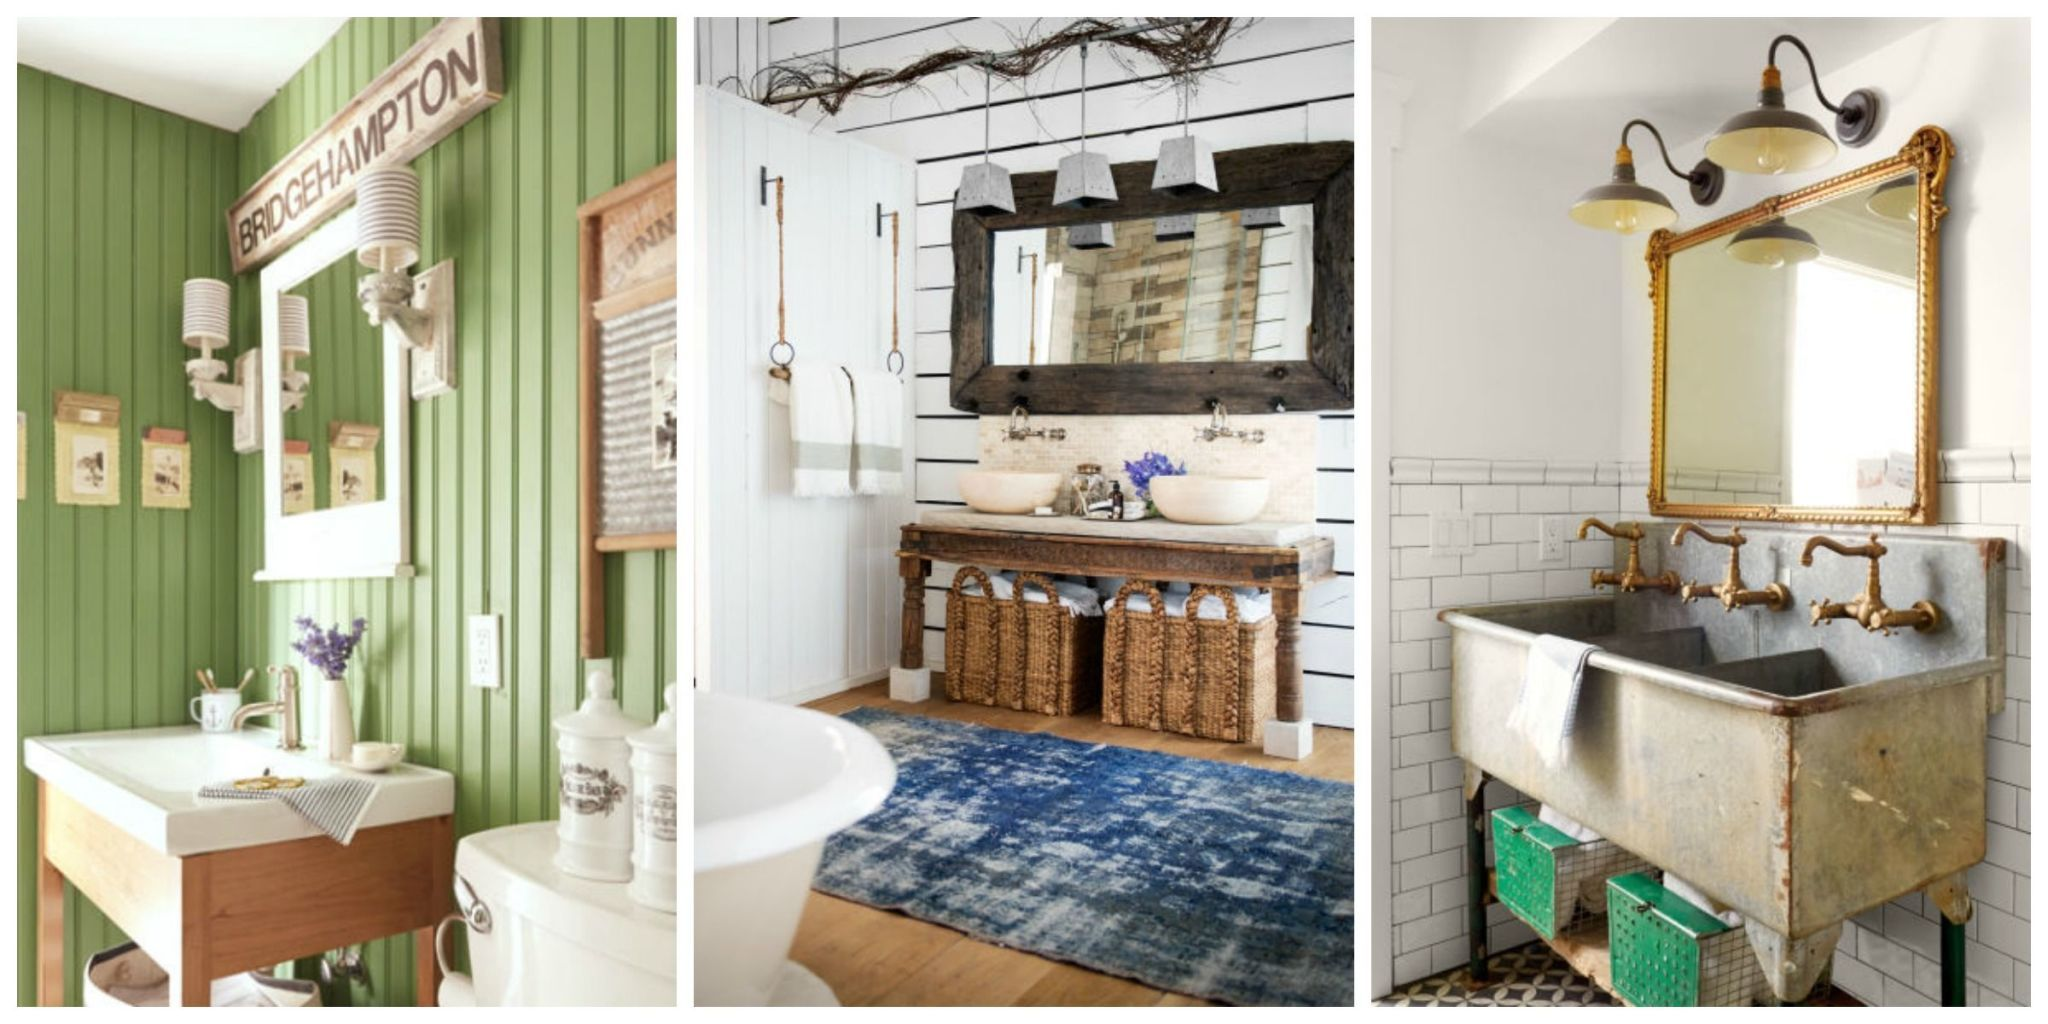 Attirant From Vintage Fixtures To Bold Wallpaper Patterns, These Beautiful Bathroom  Design Ideas Will Make Your Homeu0027s Smallest Room The Most Peaceful Spot In  The ...